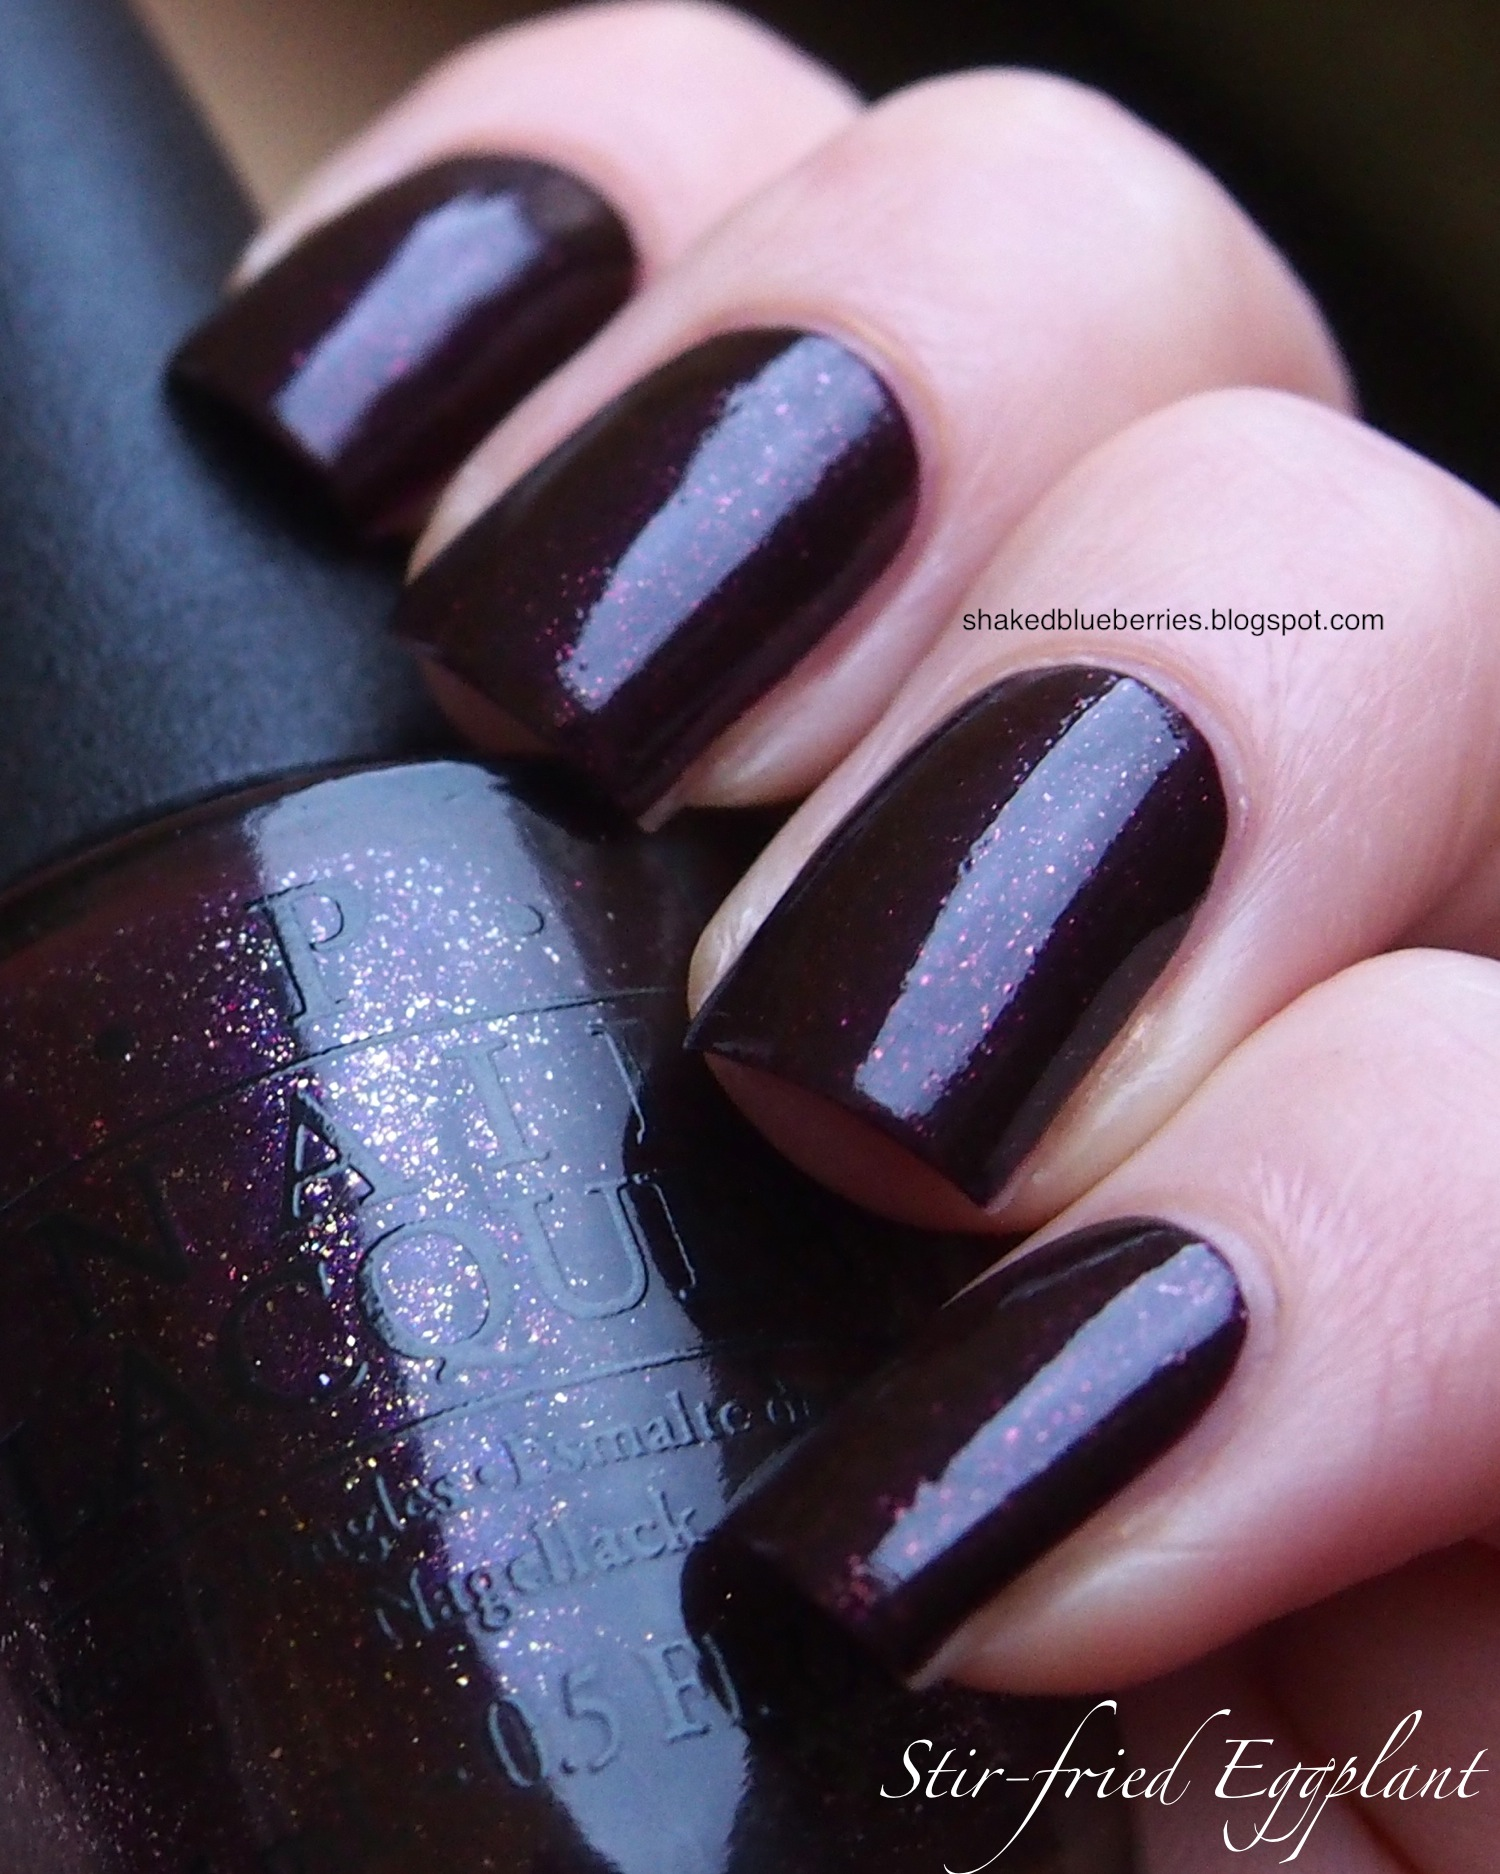 OPI_stirfried_eggplant_4